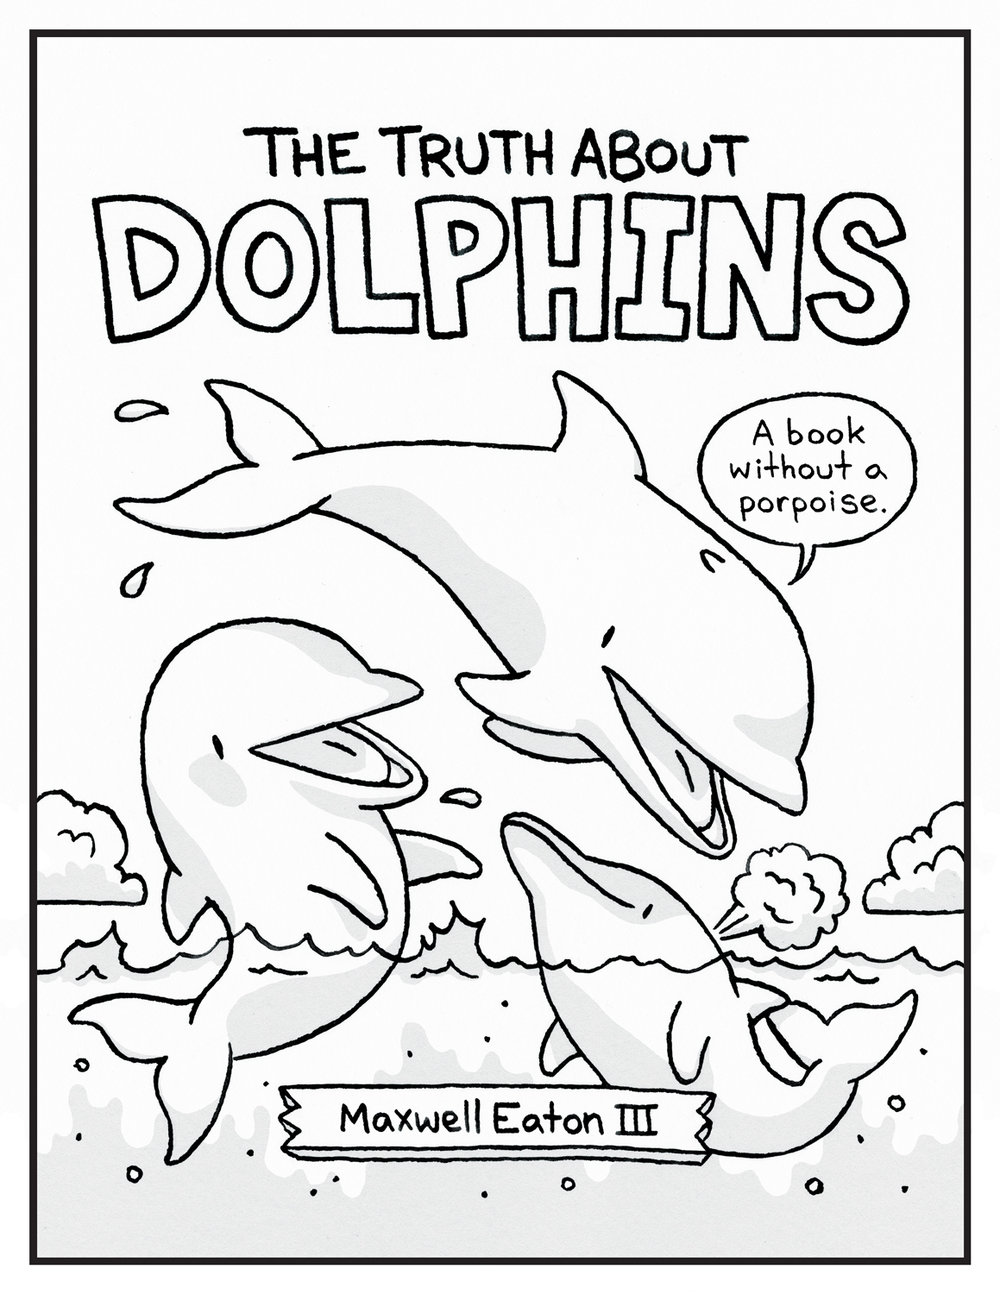 DOLPHINS-coloring-page.jpg